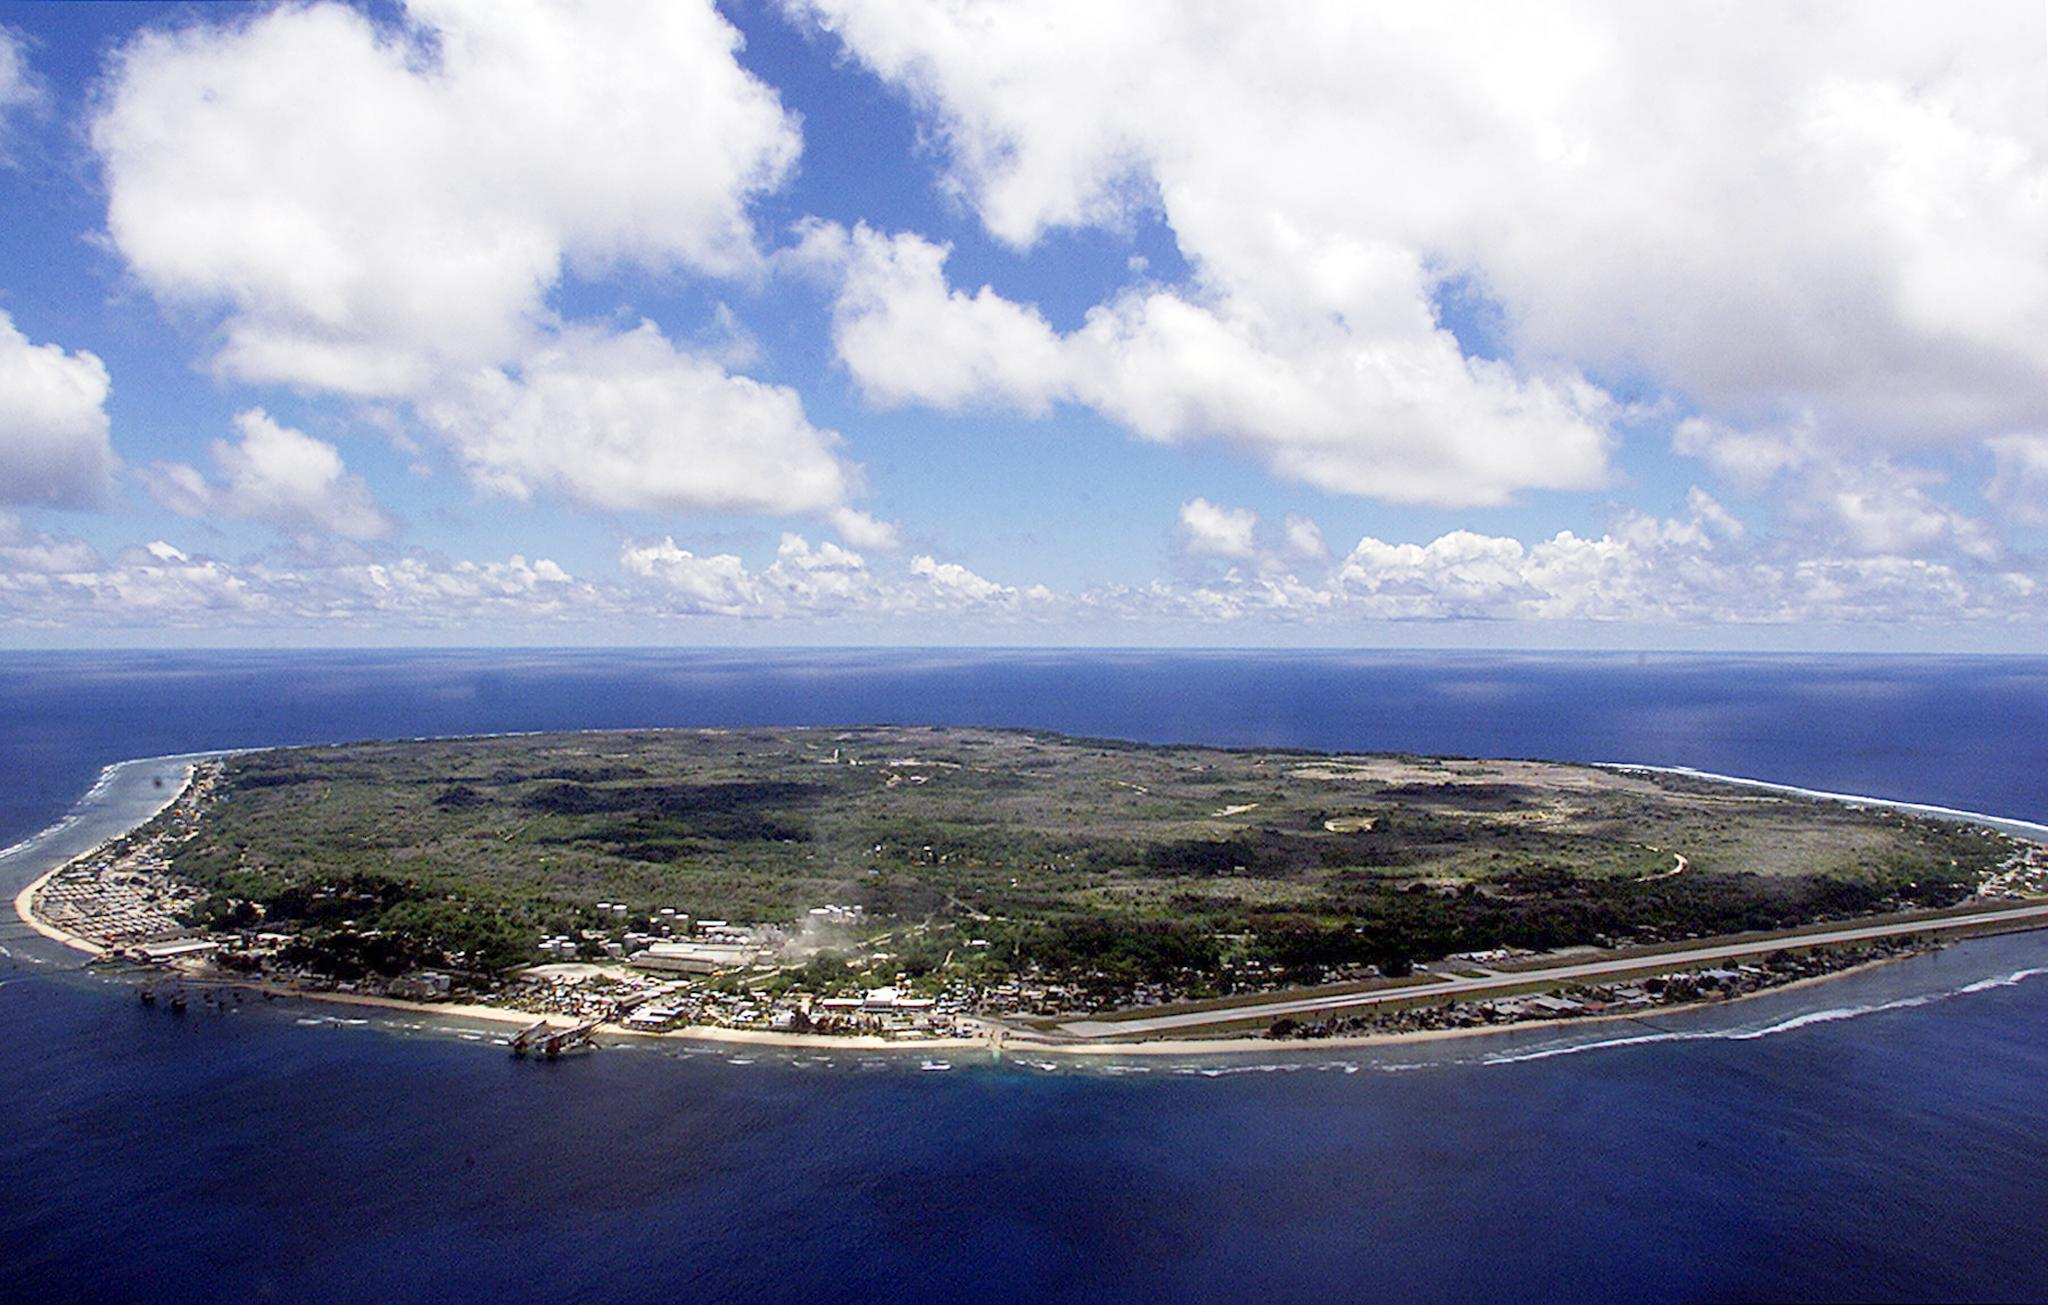 The barren and bankrupt island state of the Republic of Nauru on Sept. 11, 2001